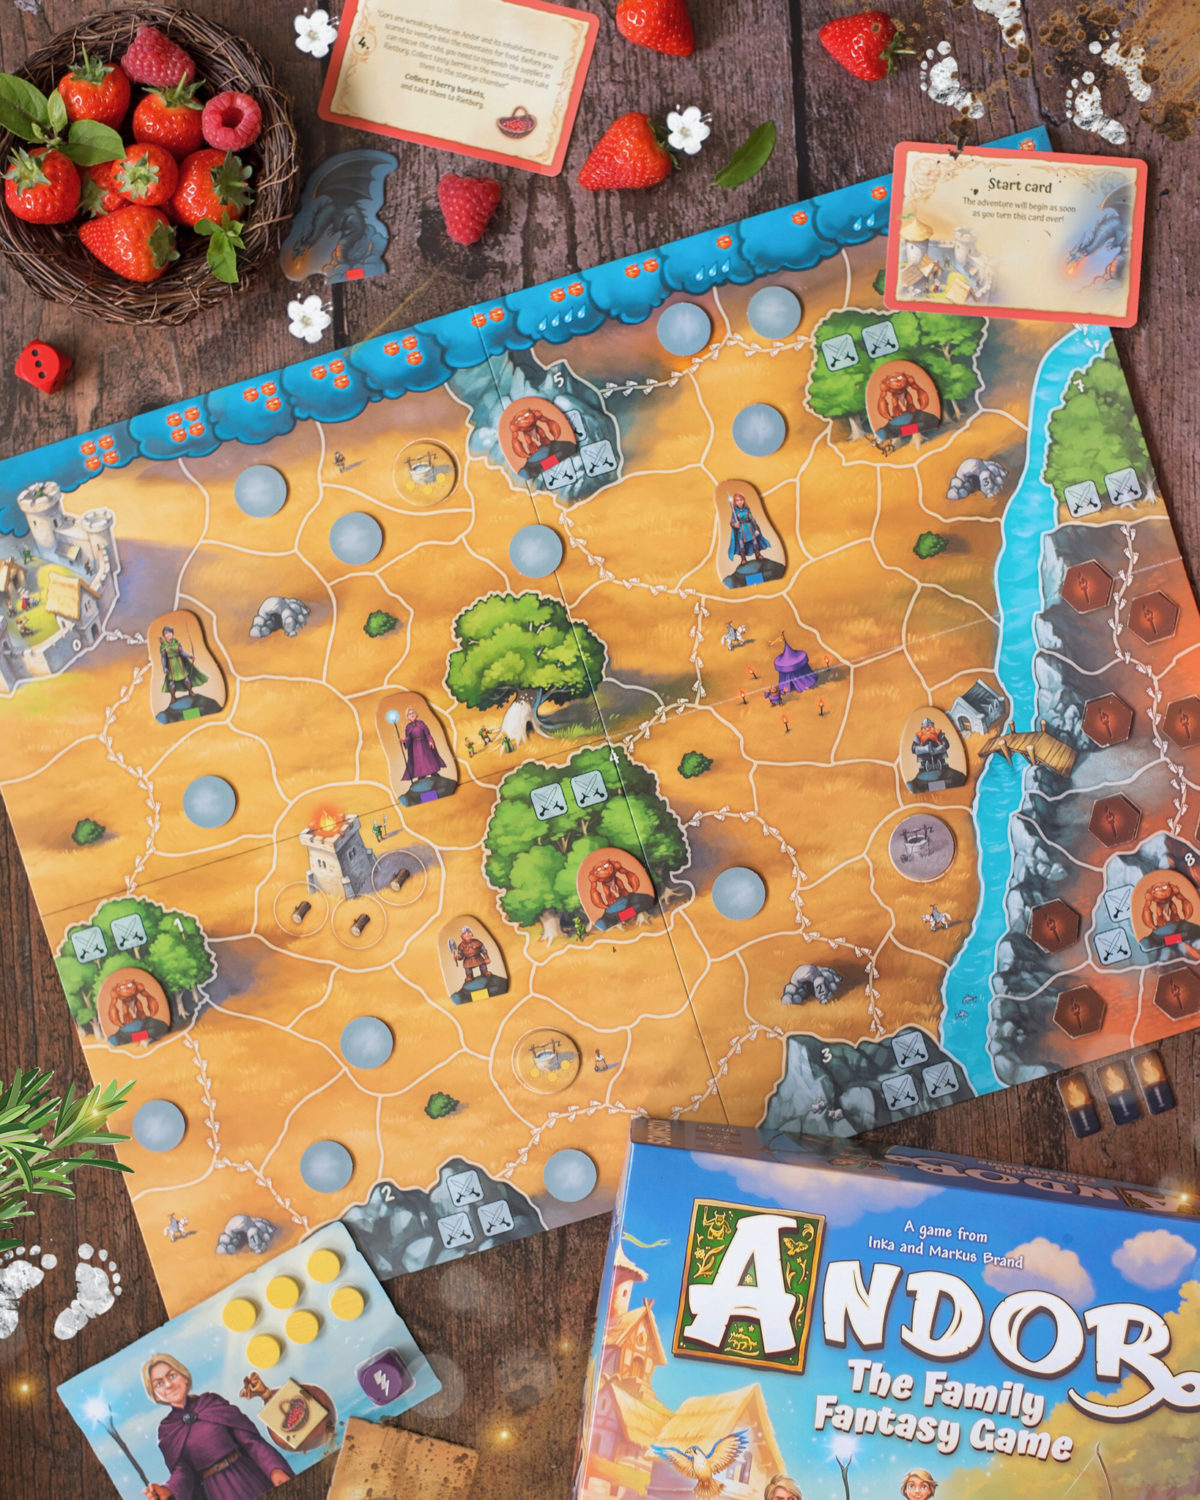 Image shows flat lay of Andor: The Family Fantasy Game board and components from Kosmos Games. Plus some strawberries!